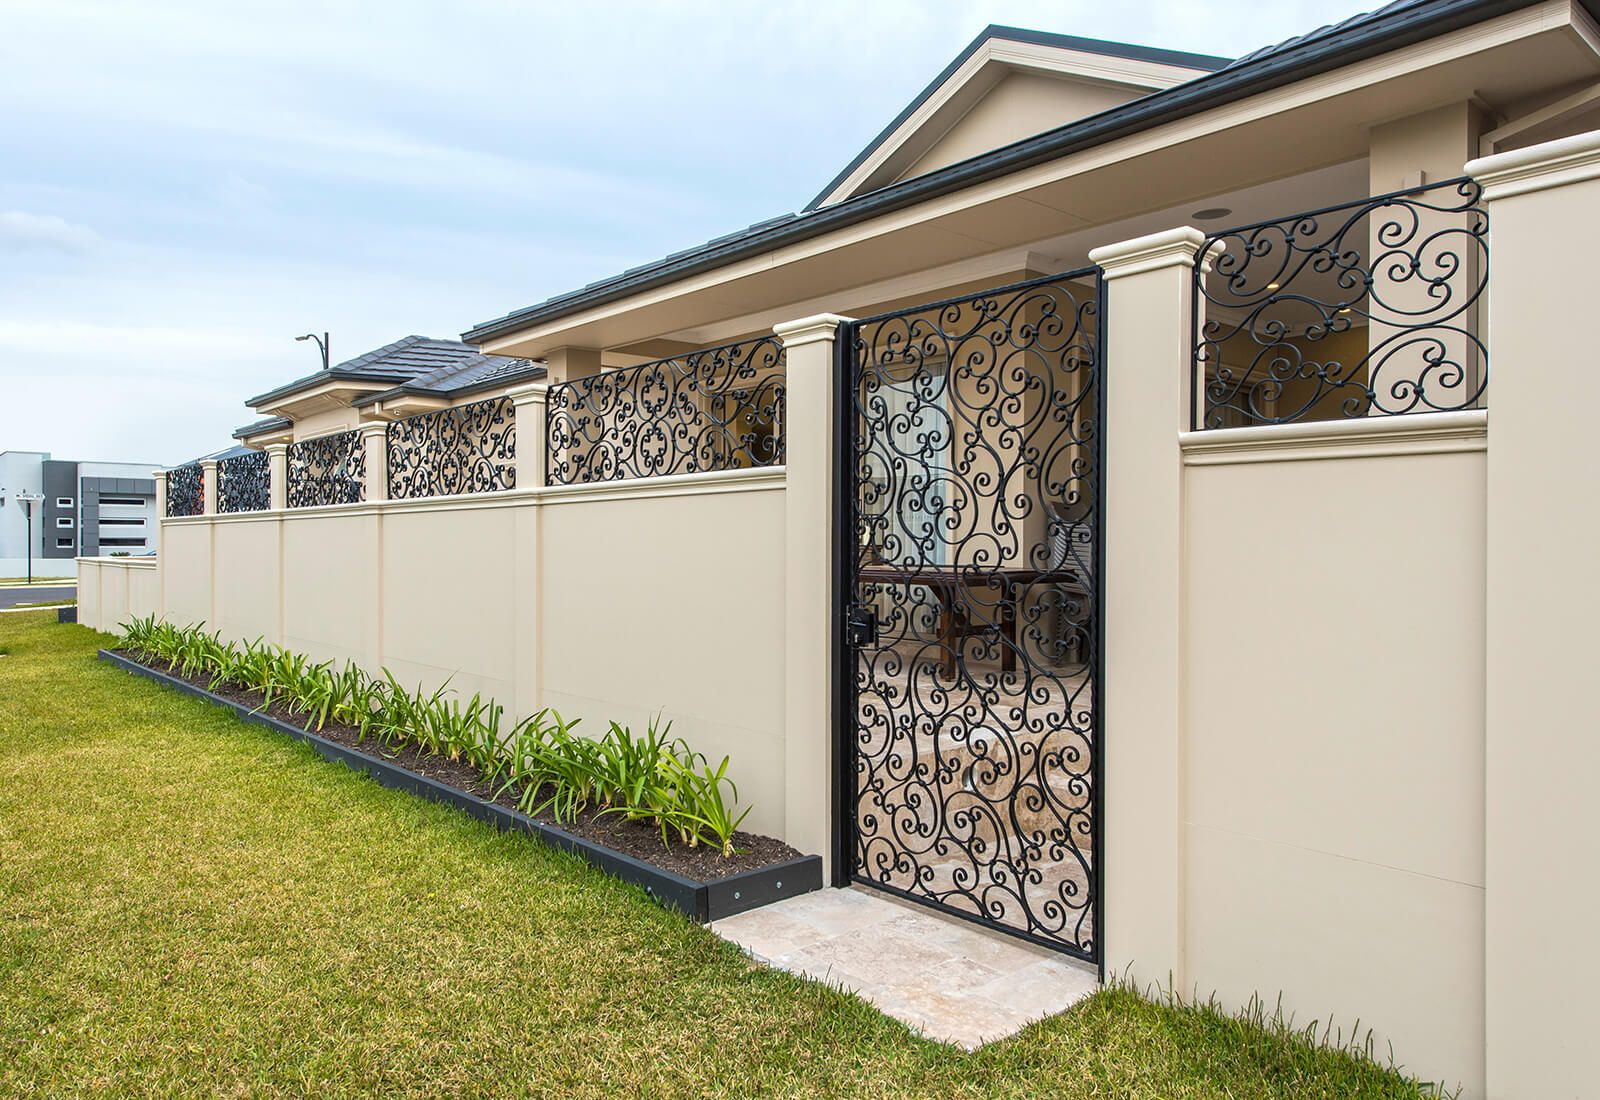 Gallery - Residential and Commercial Walls & Fences in 2019 | Gates